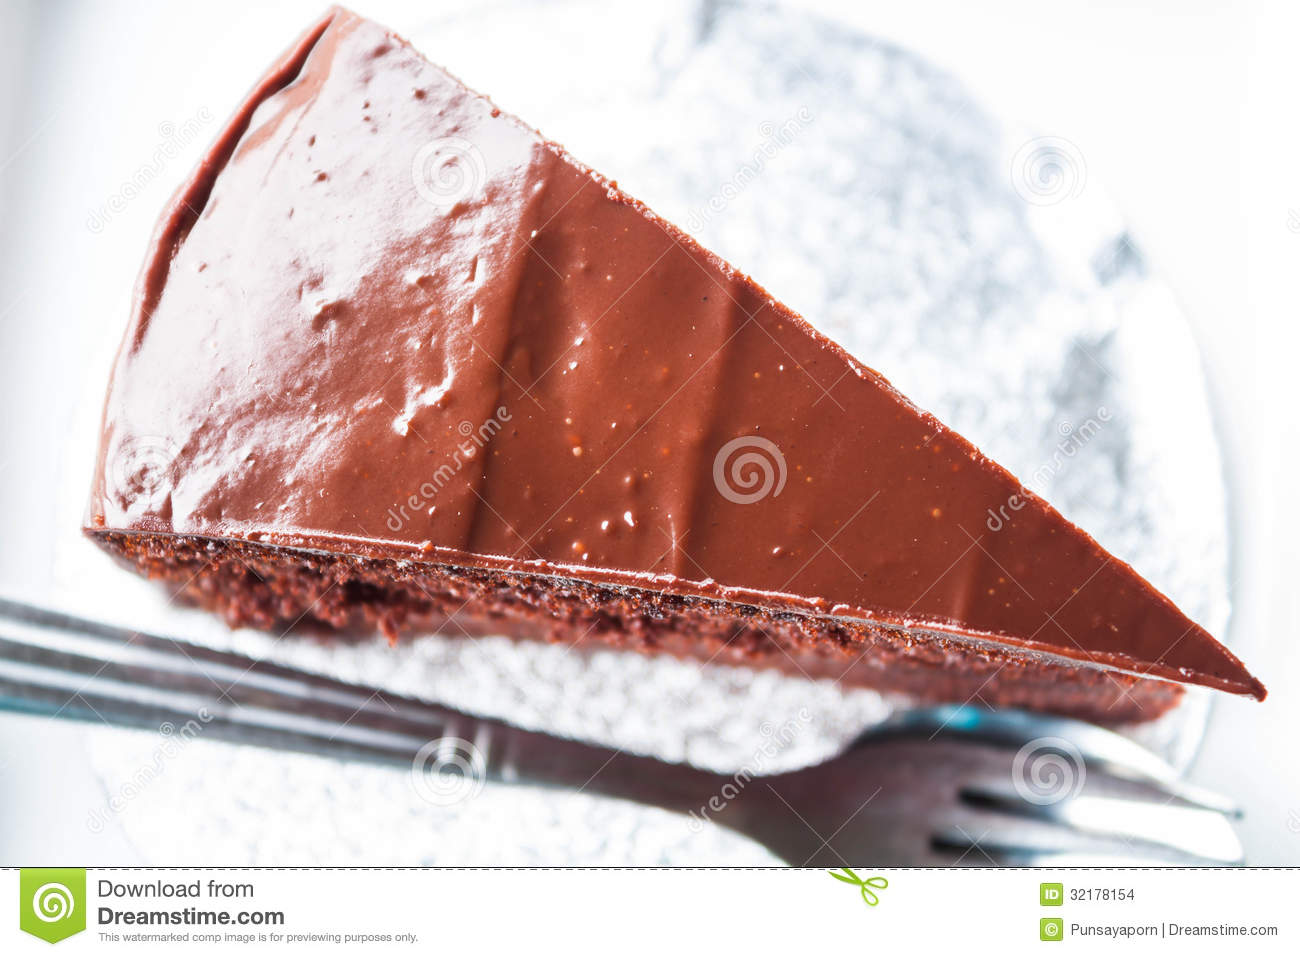 Cake Images Top View : Top View Of Chocolate Cake Stock Images - Image: 32178154